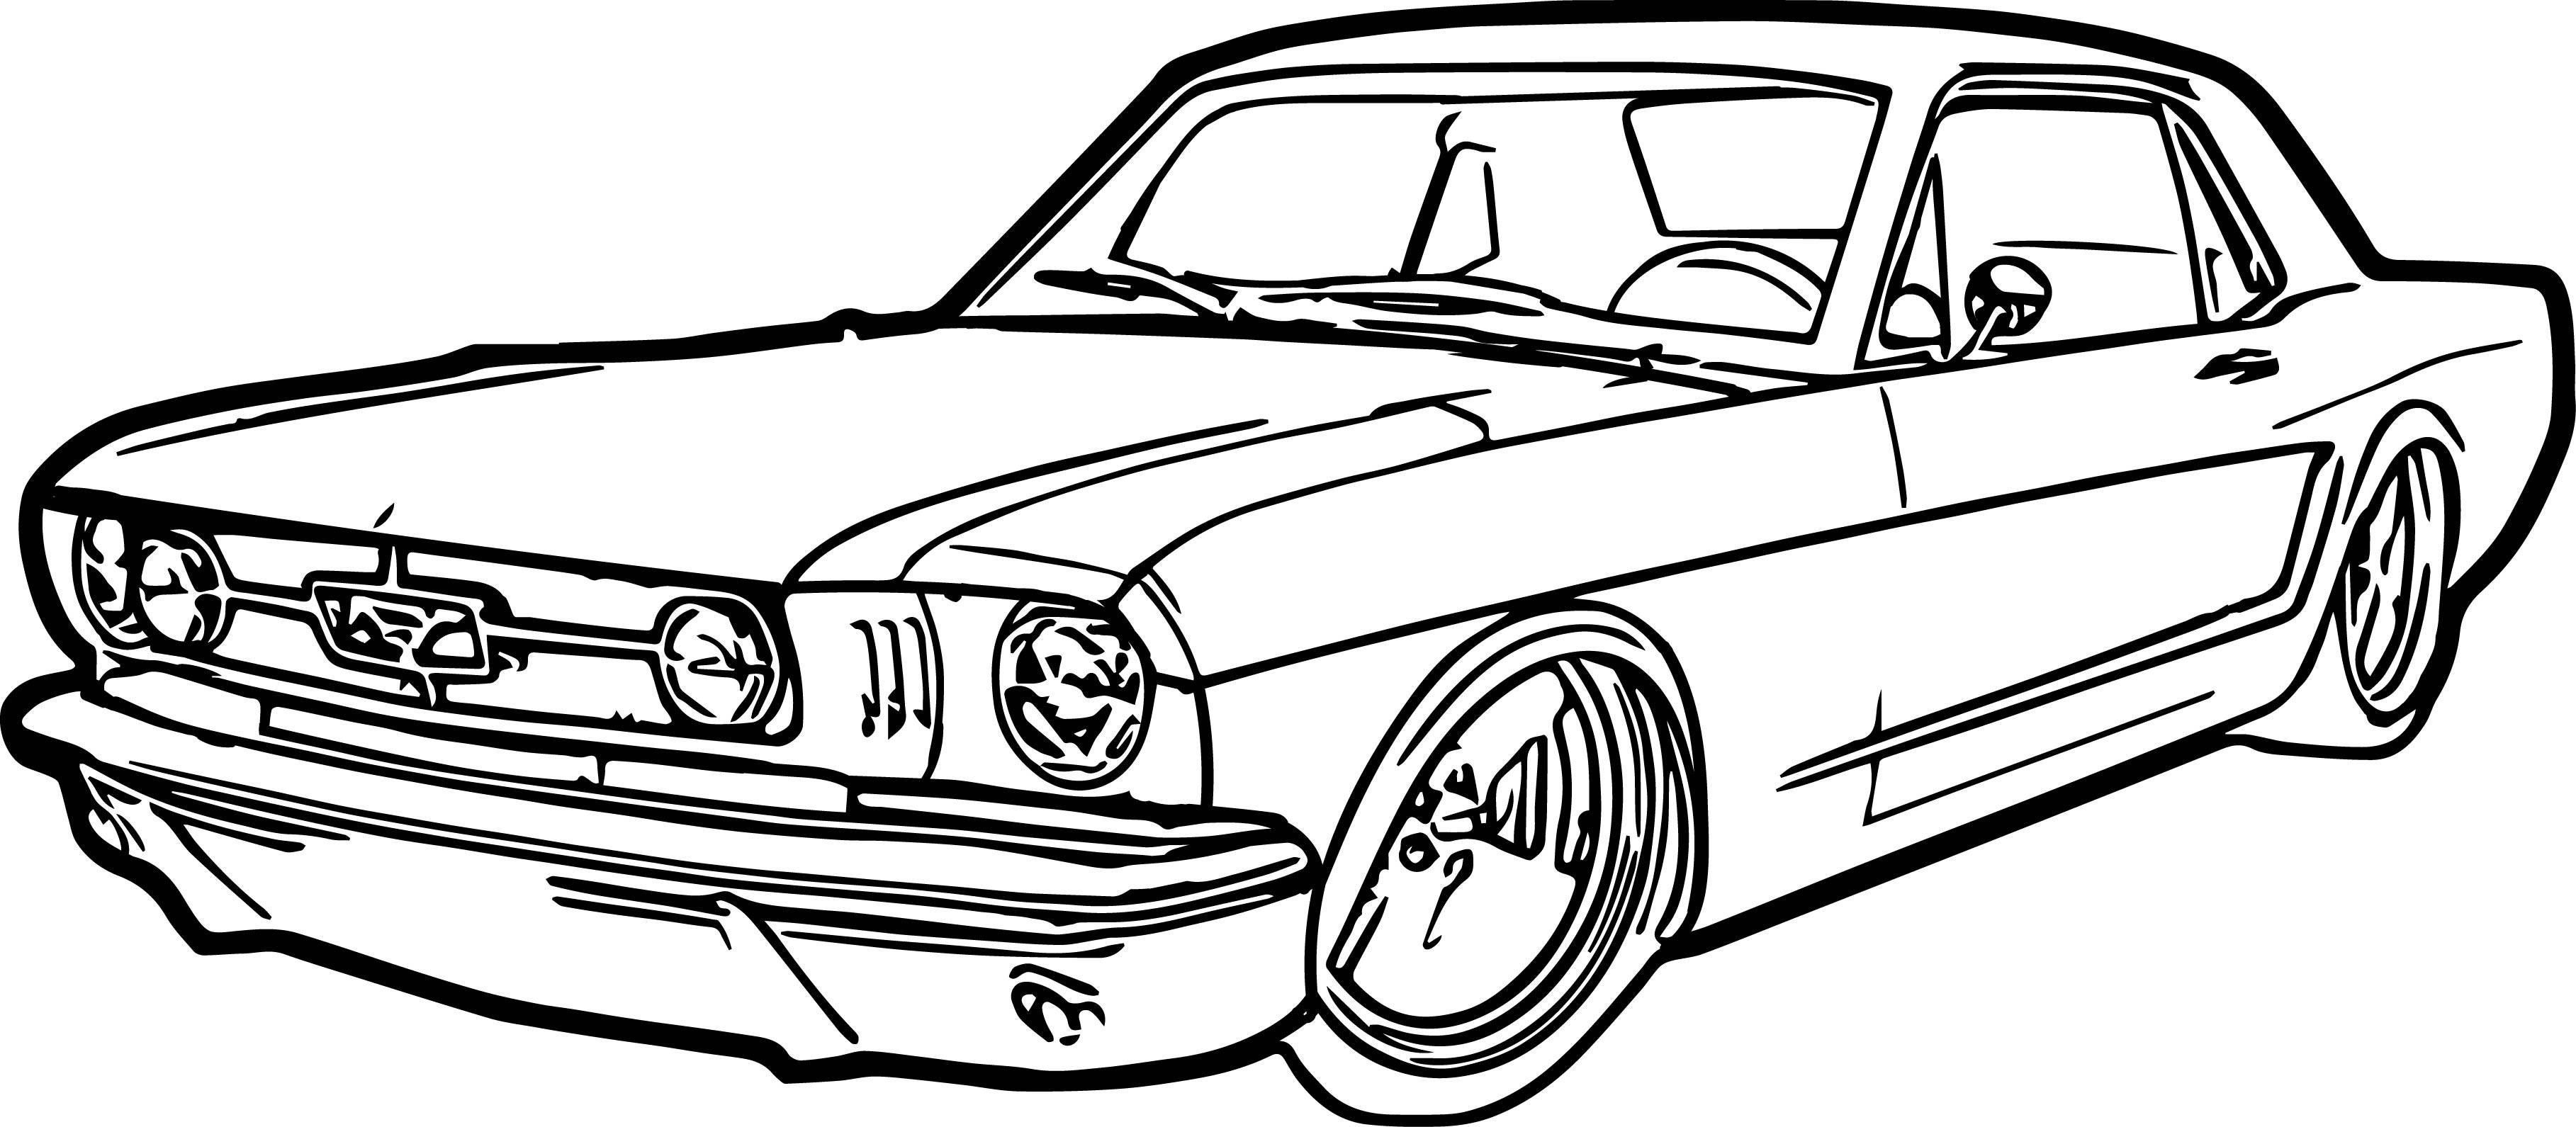 audi coloring pages audi r8 drawing at getdrawings free download pages audi coloring